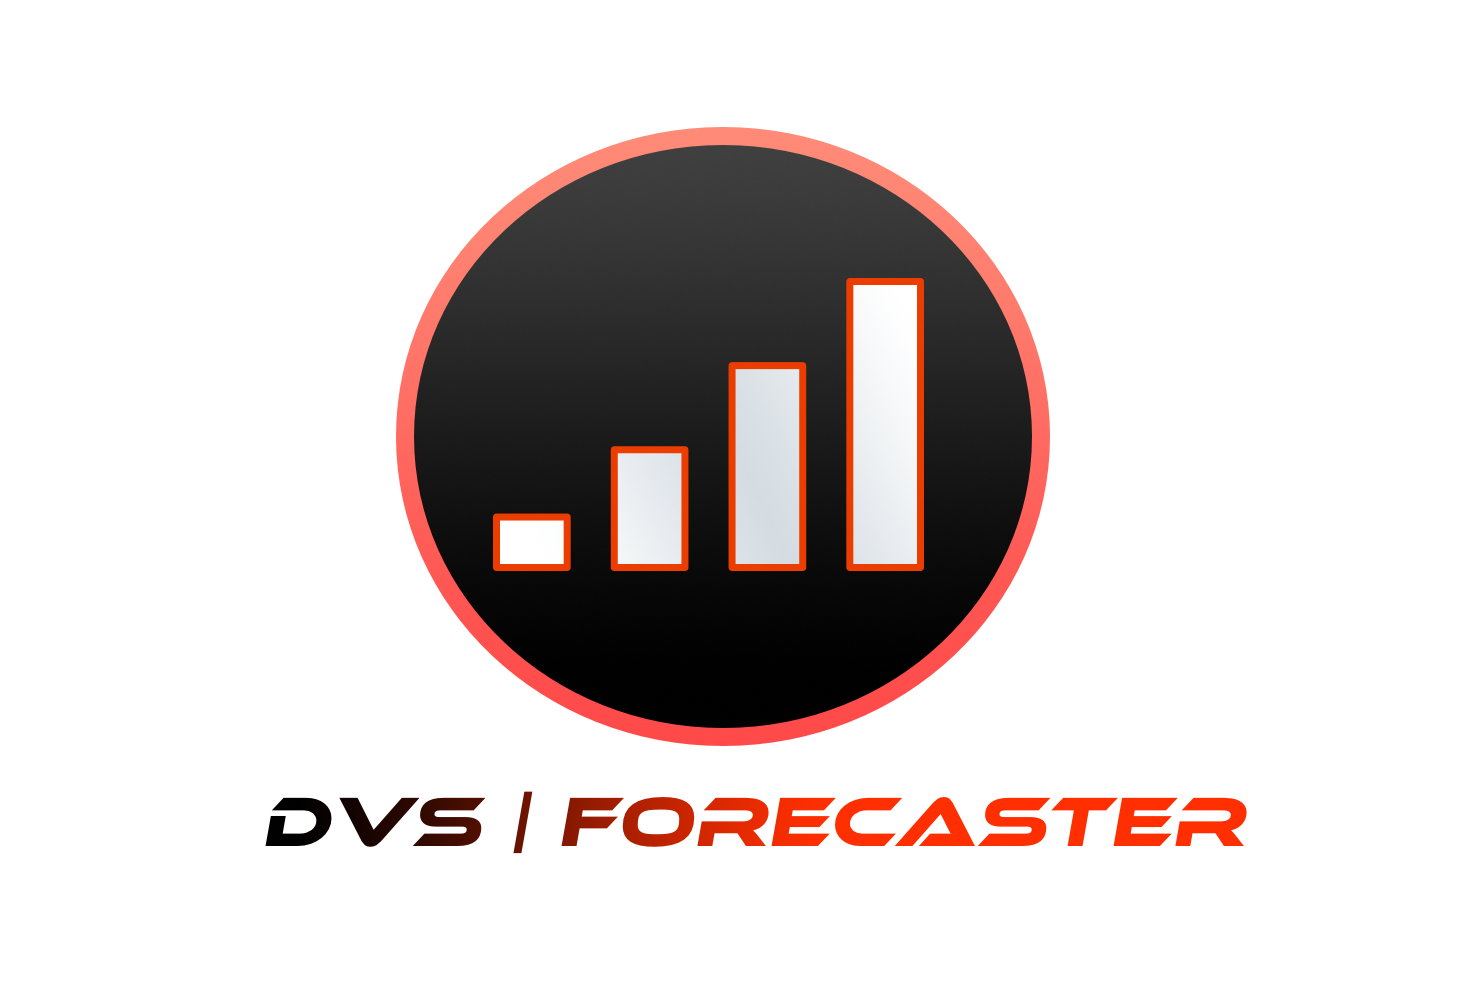 DVS Forecaster - Injury analytic software for MLB Organizations